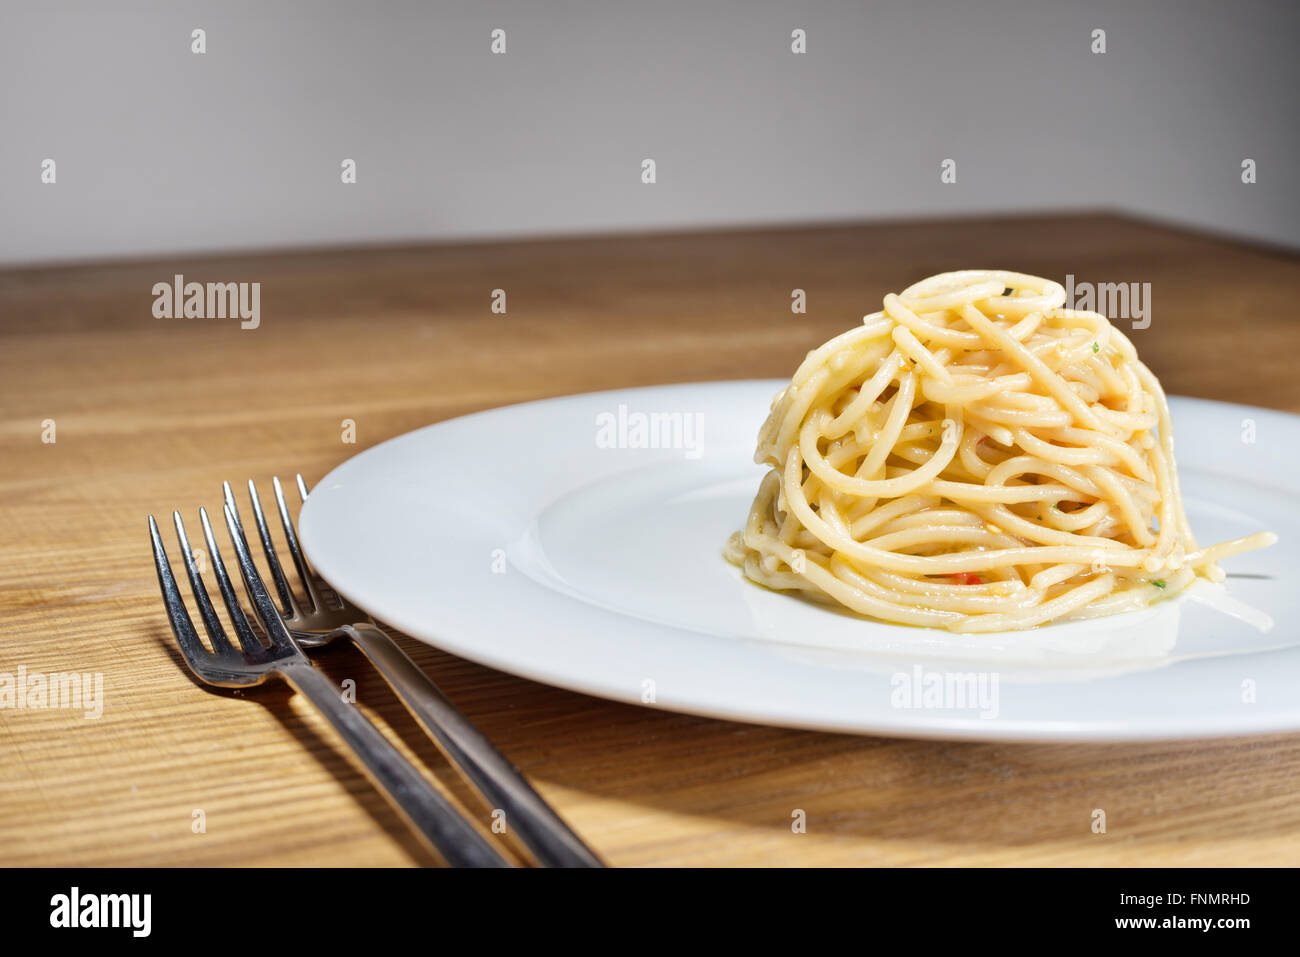 spaghetti with garlic, oil and hot peppers with parsley and fork on table - Stock Image